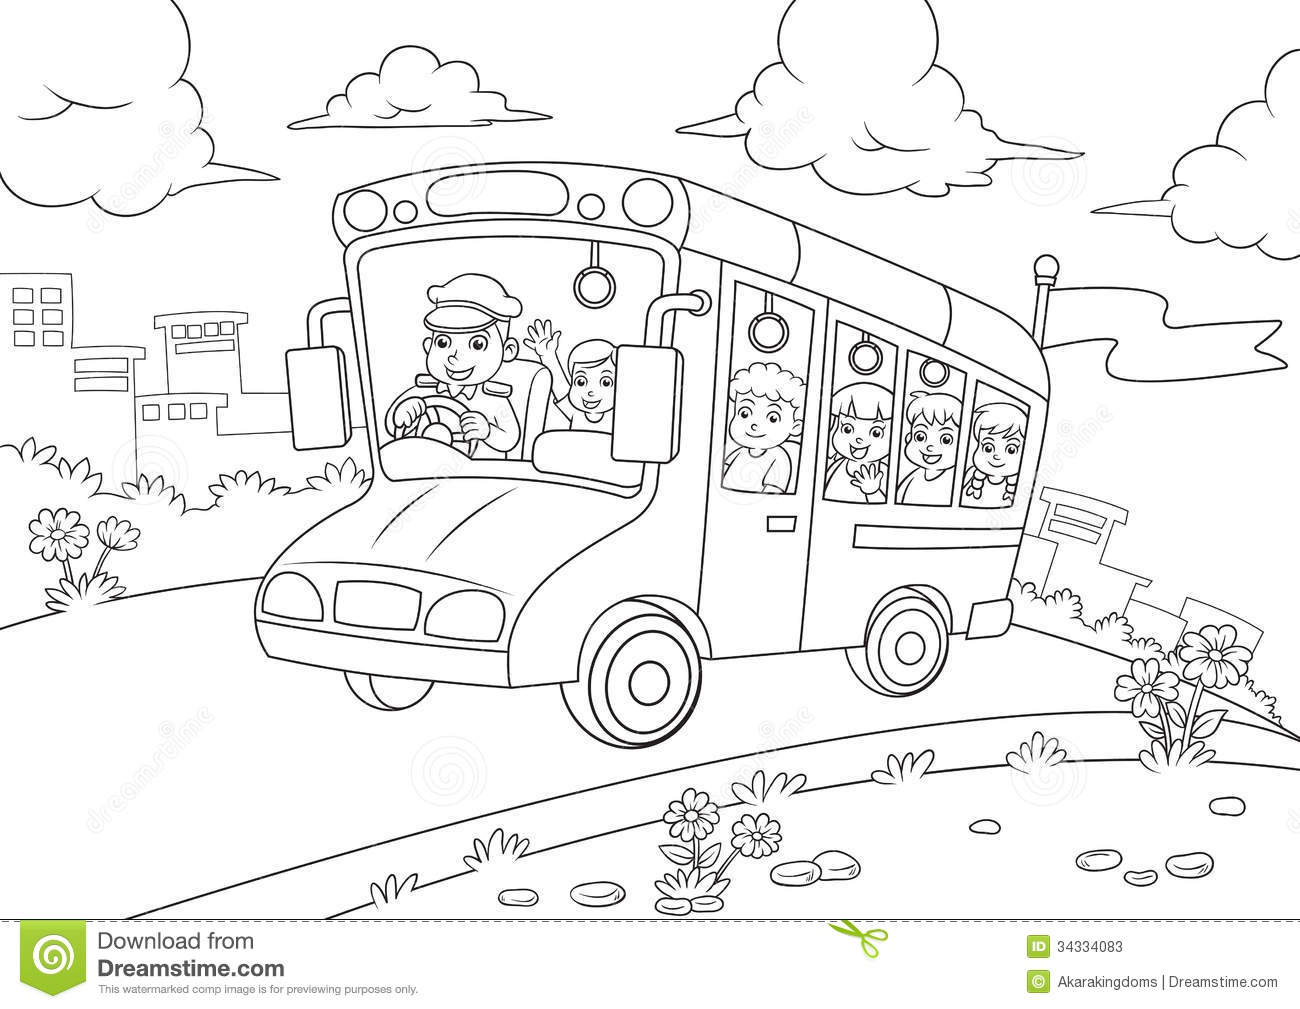 Coloring book school - Book Bus Coloring Outline School